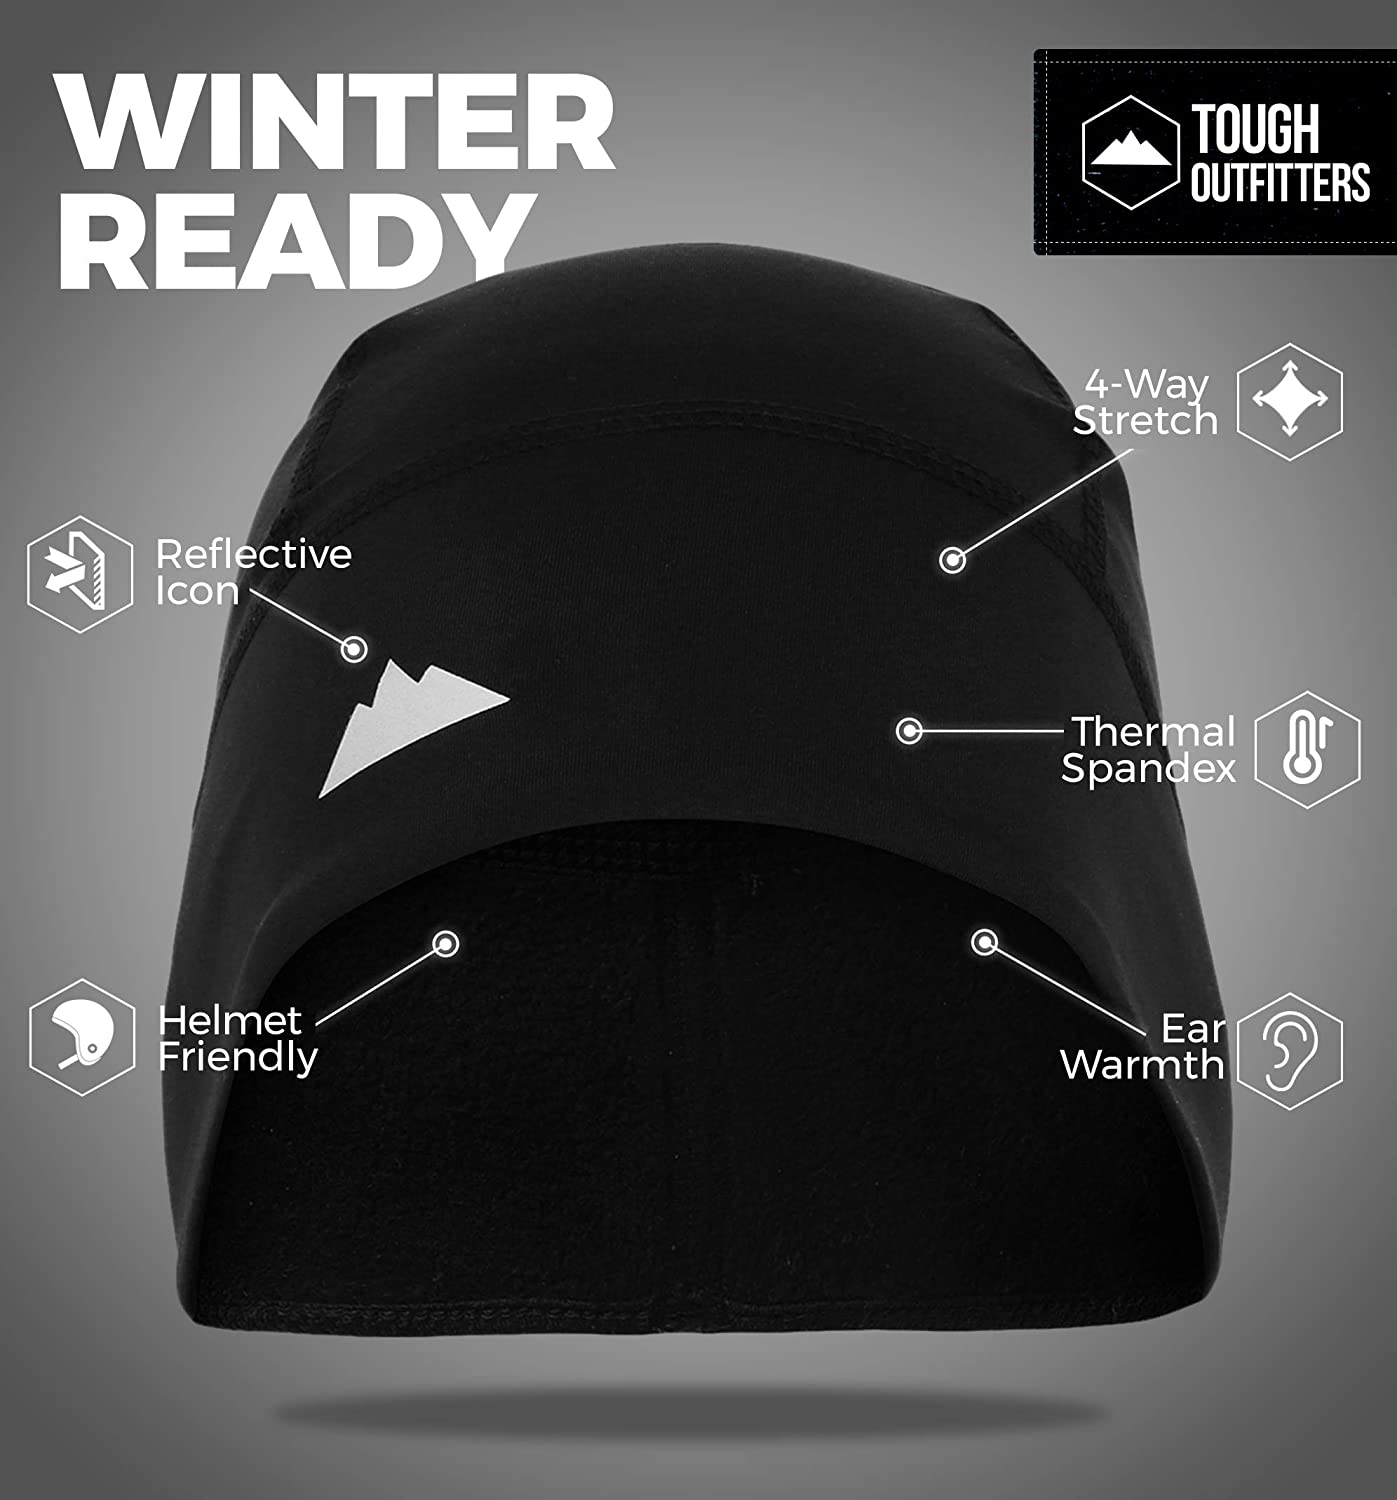 2 Pack Thermal Cycling Caps Wet Wicking Sports Transpirable Running Beanie Helmet Liner para Adultos Mujeres y Hombres TAGVO Skull Cap Orejeras Windproof Tama/ño el/ástico Universal